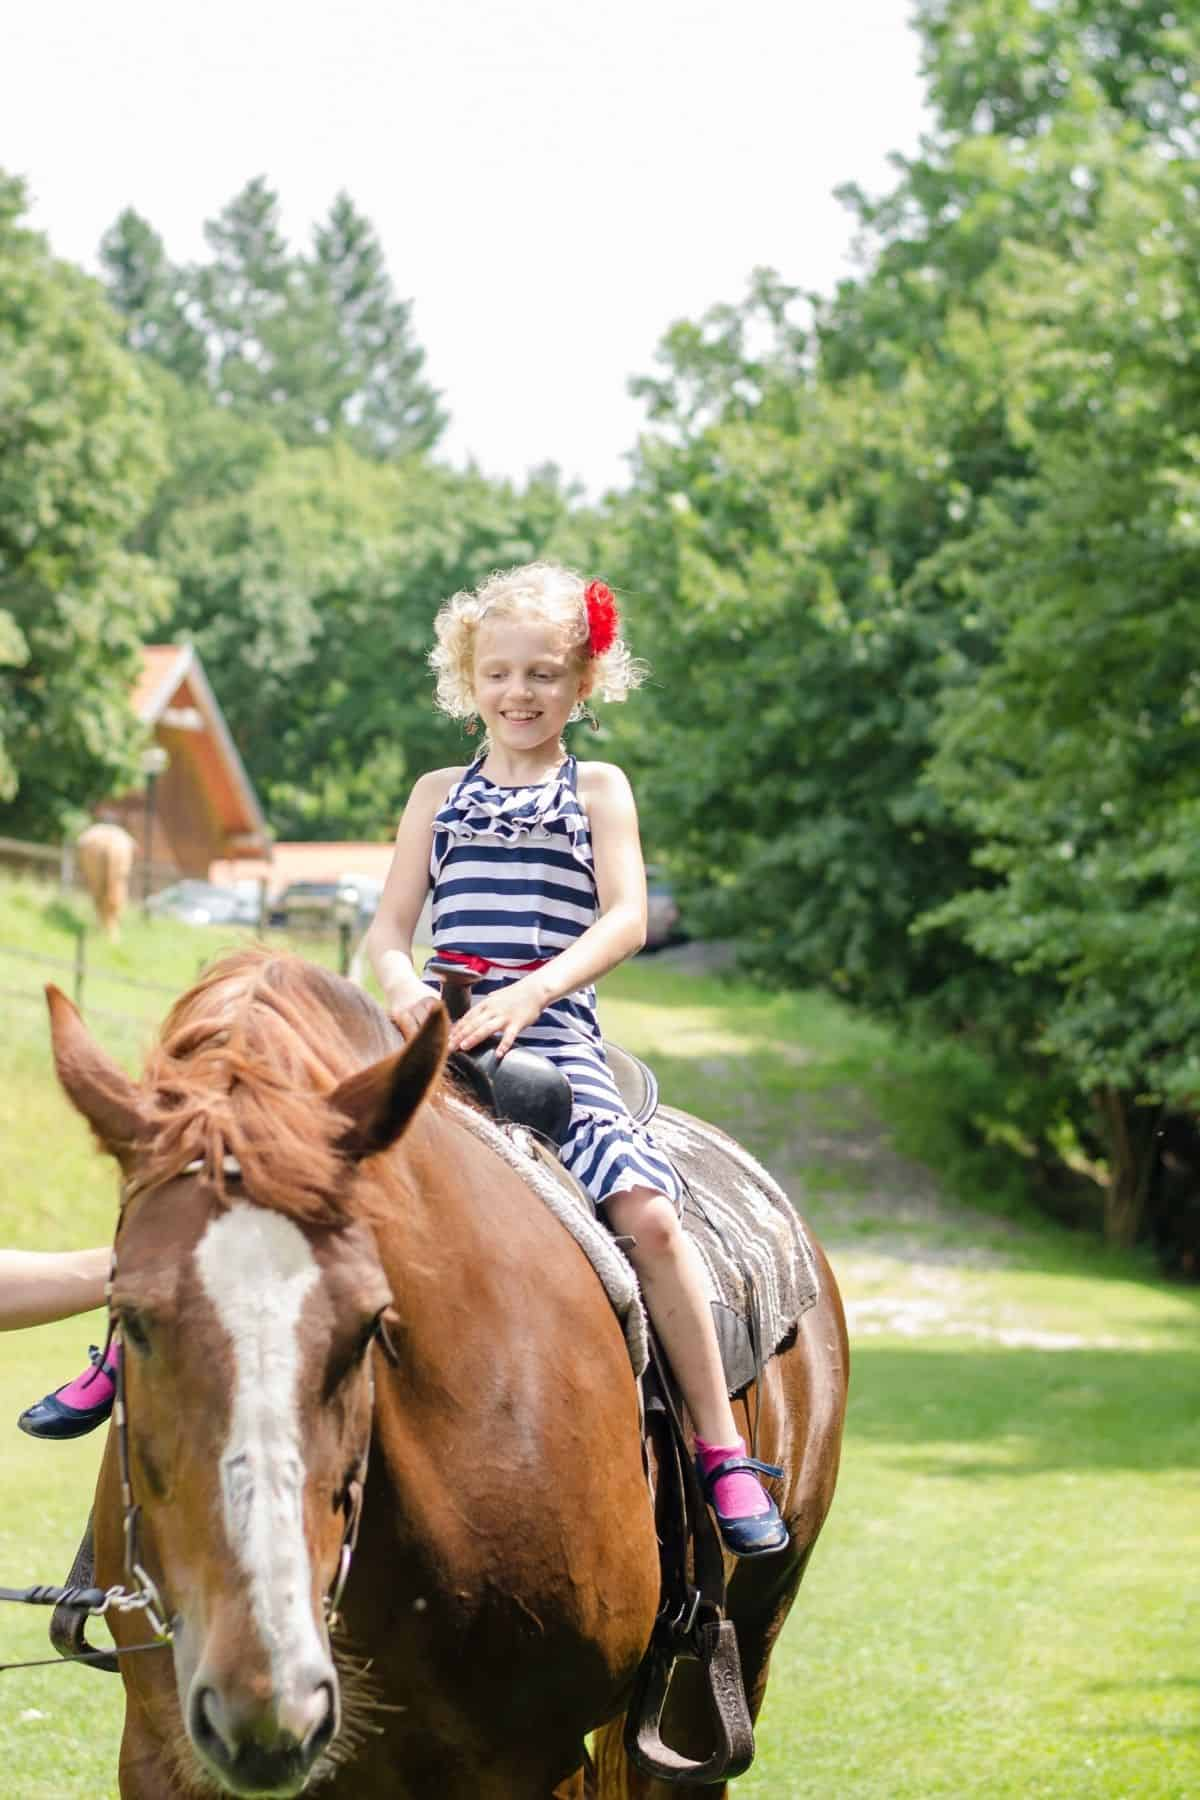 Blonde girl in pigtails on top of brown horse